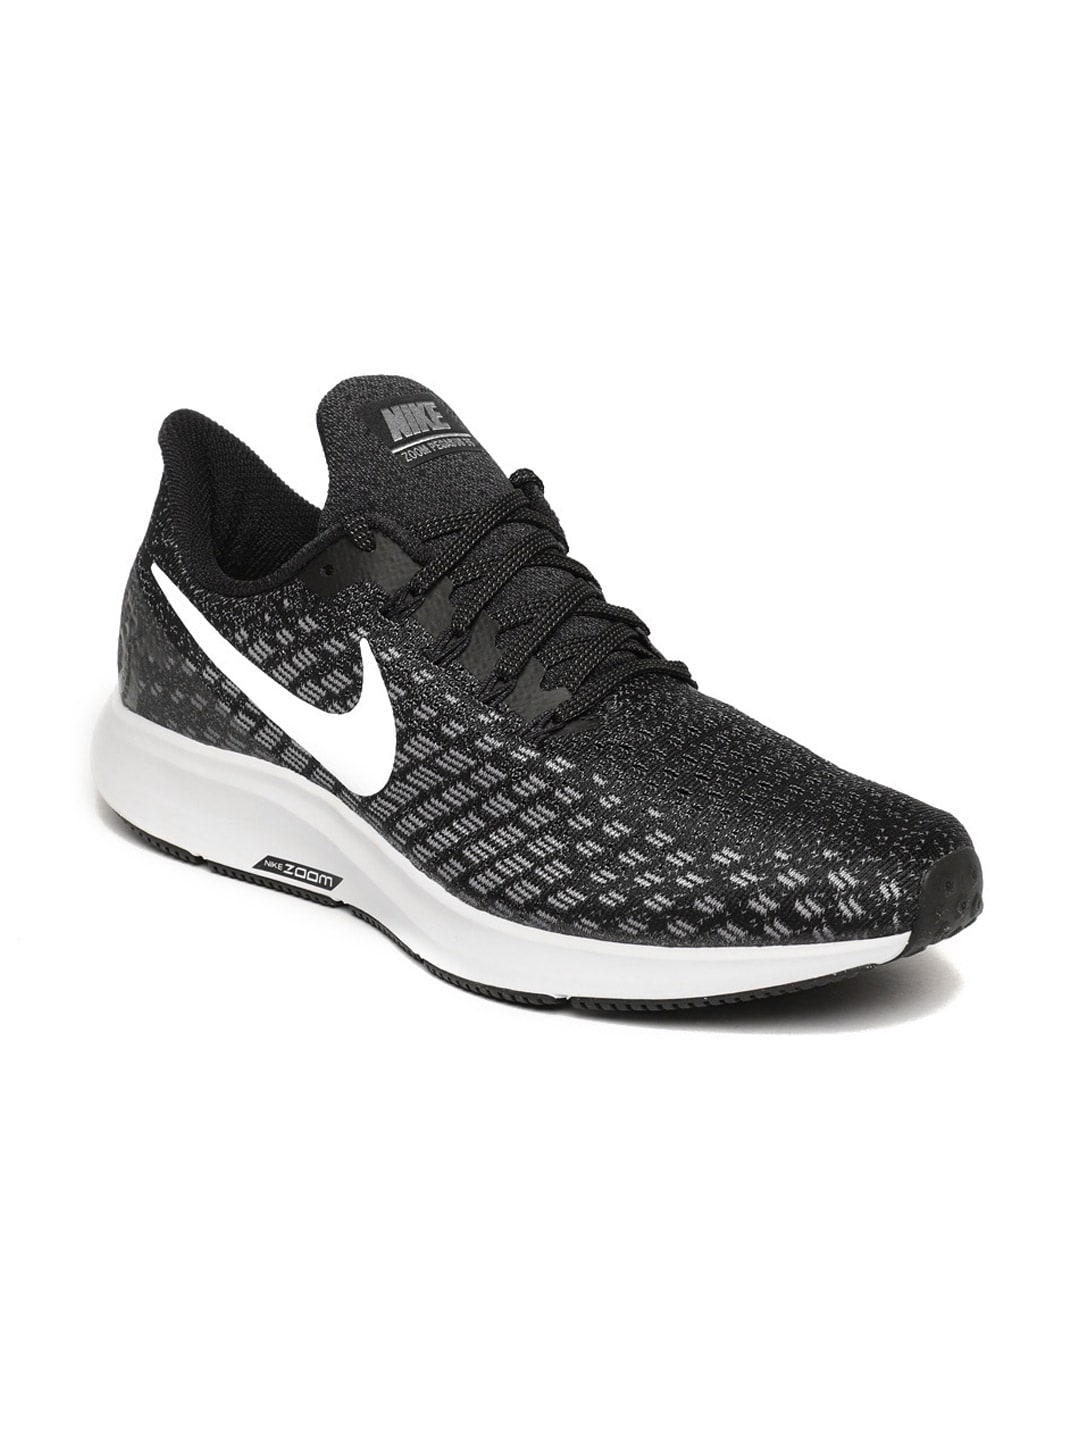 1442e286b35f Nike Fifa Shoes Casual - Buy Nike Fifa Shoes Casual online in India